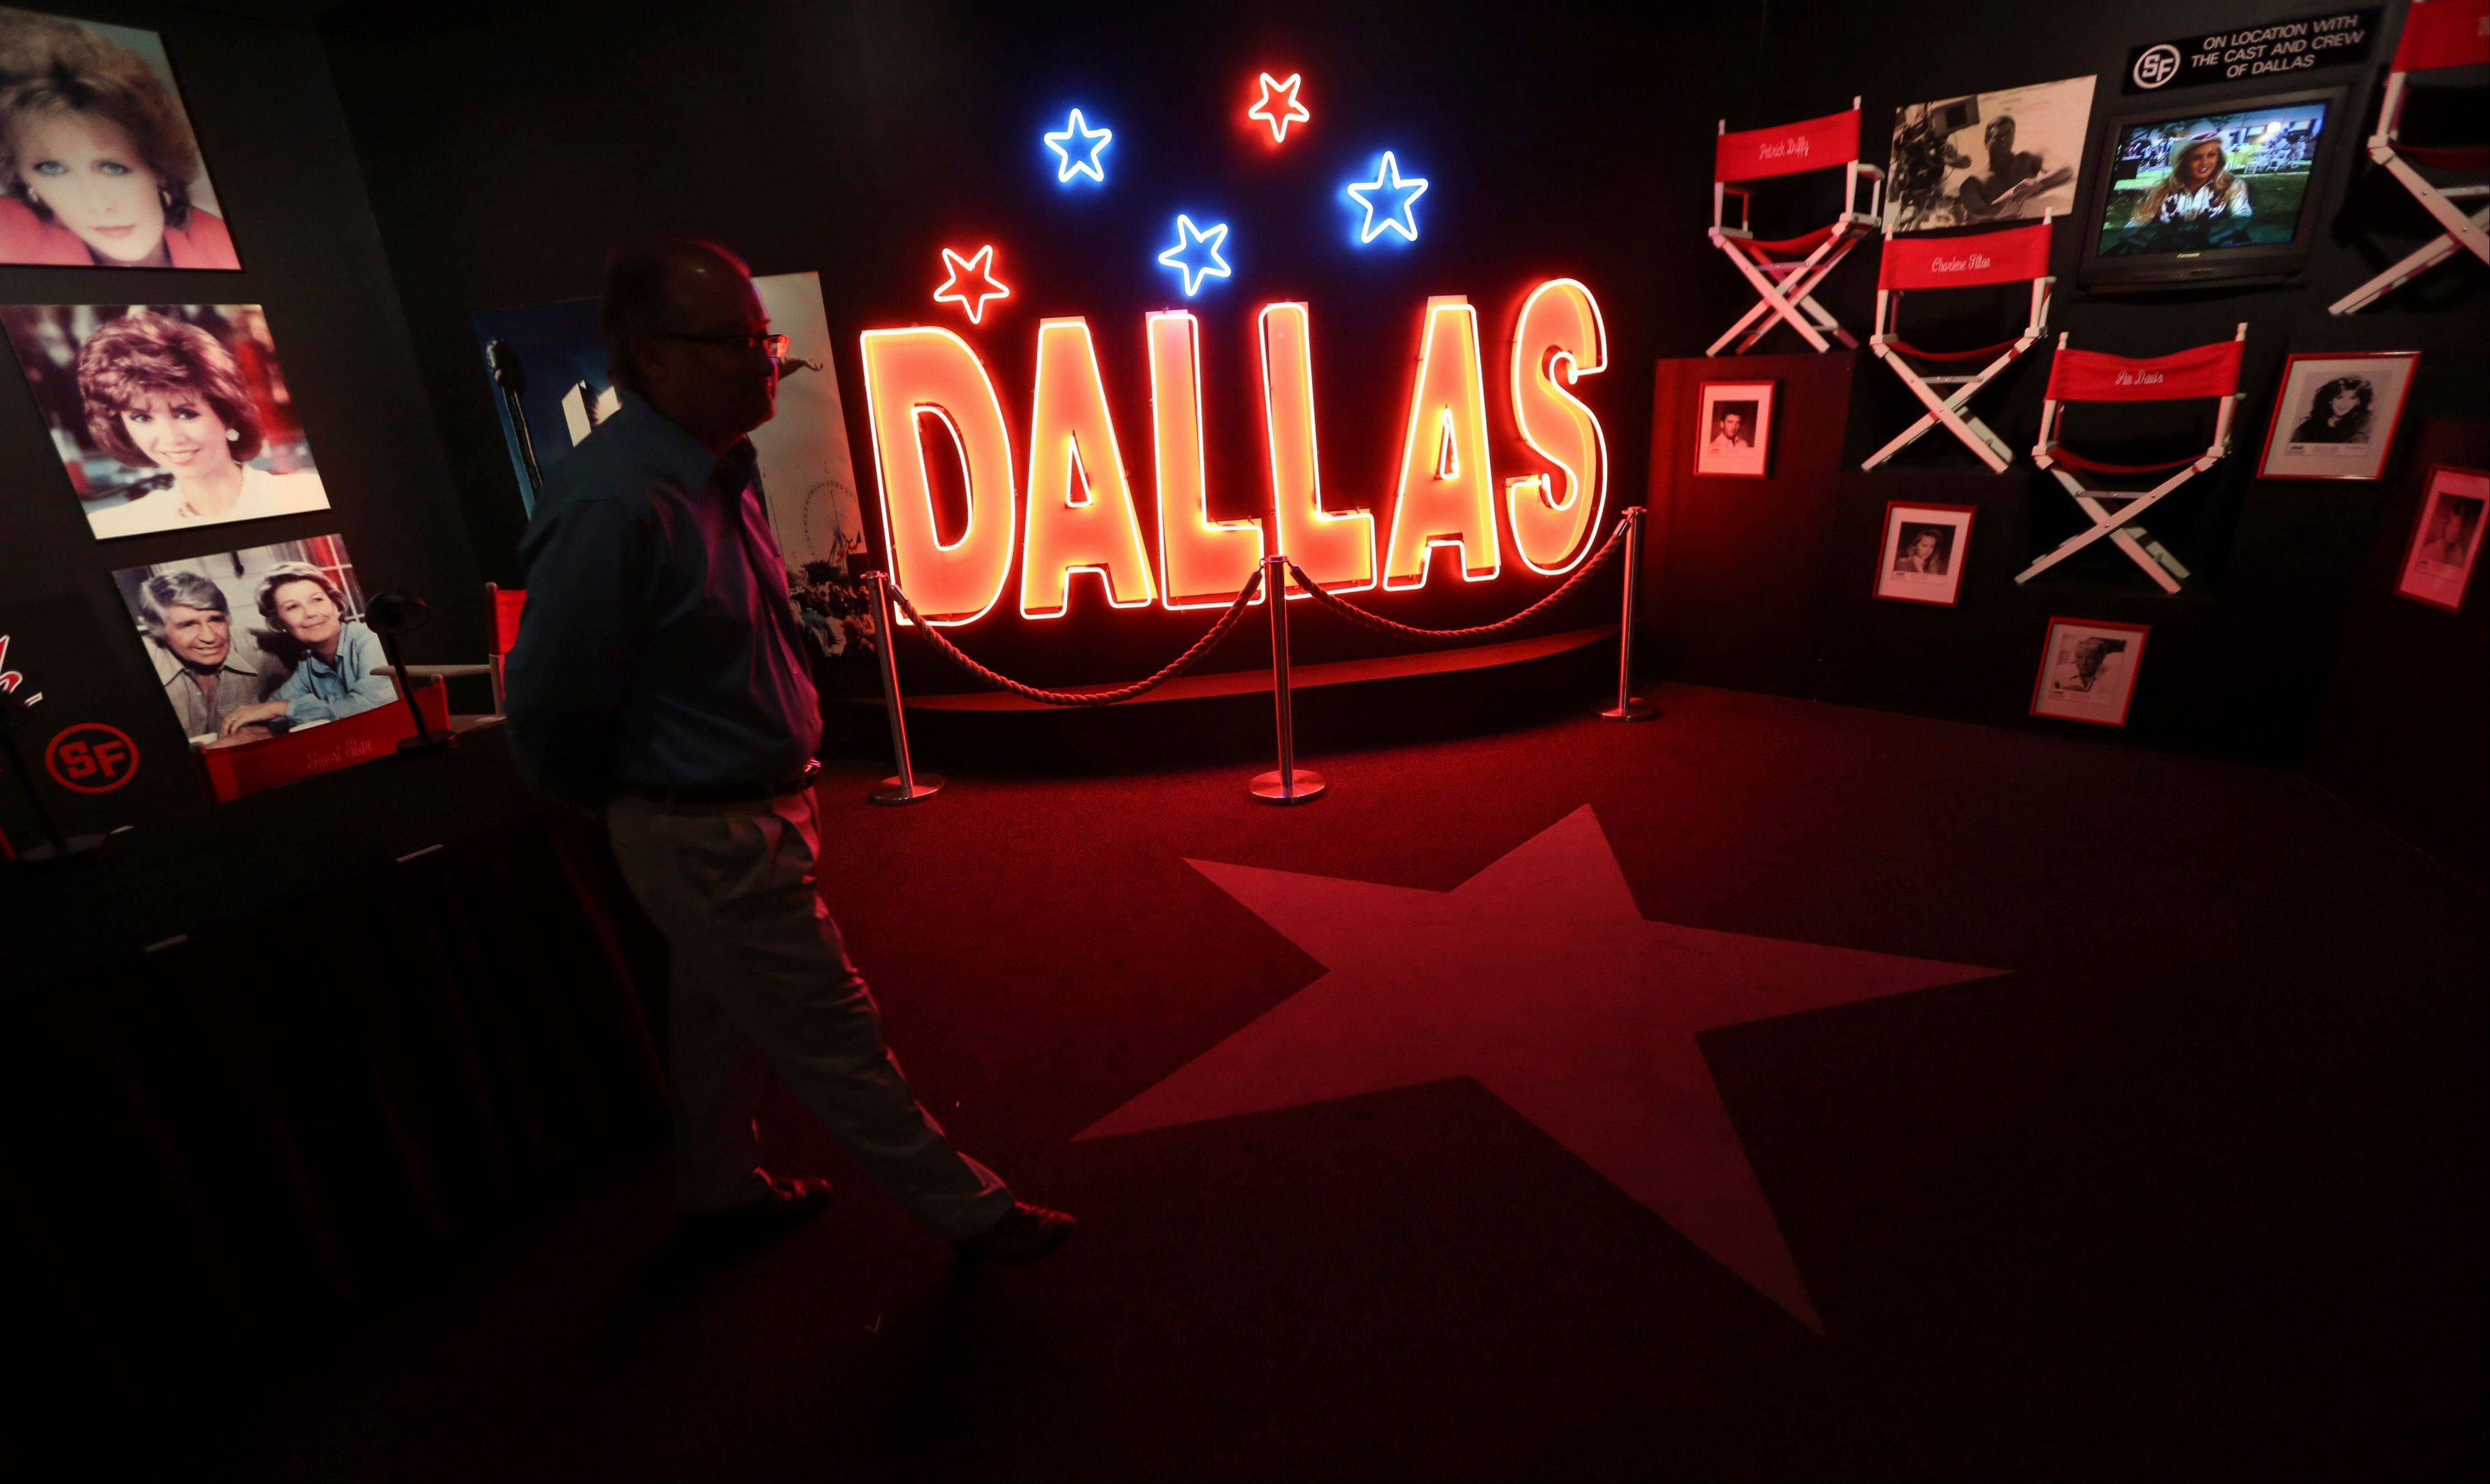 A tourist looks at the Dallas TV show museum at Southfork Ranch in Parker, Texas. Tourists have been flocking to Southfork Ranch since the early years of the classic series, which ran from 1978 to 1991.